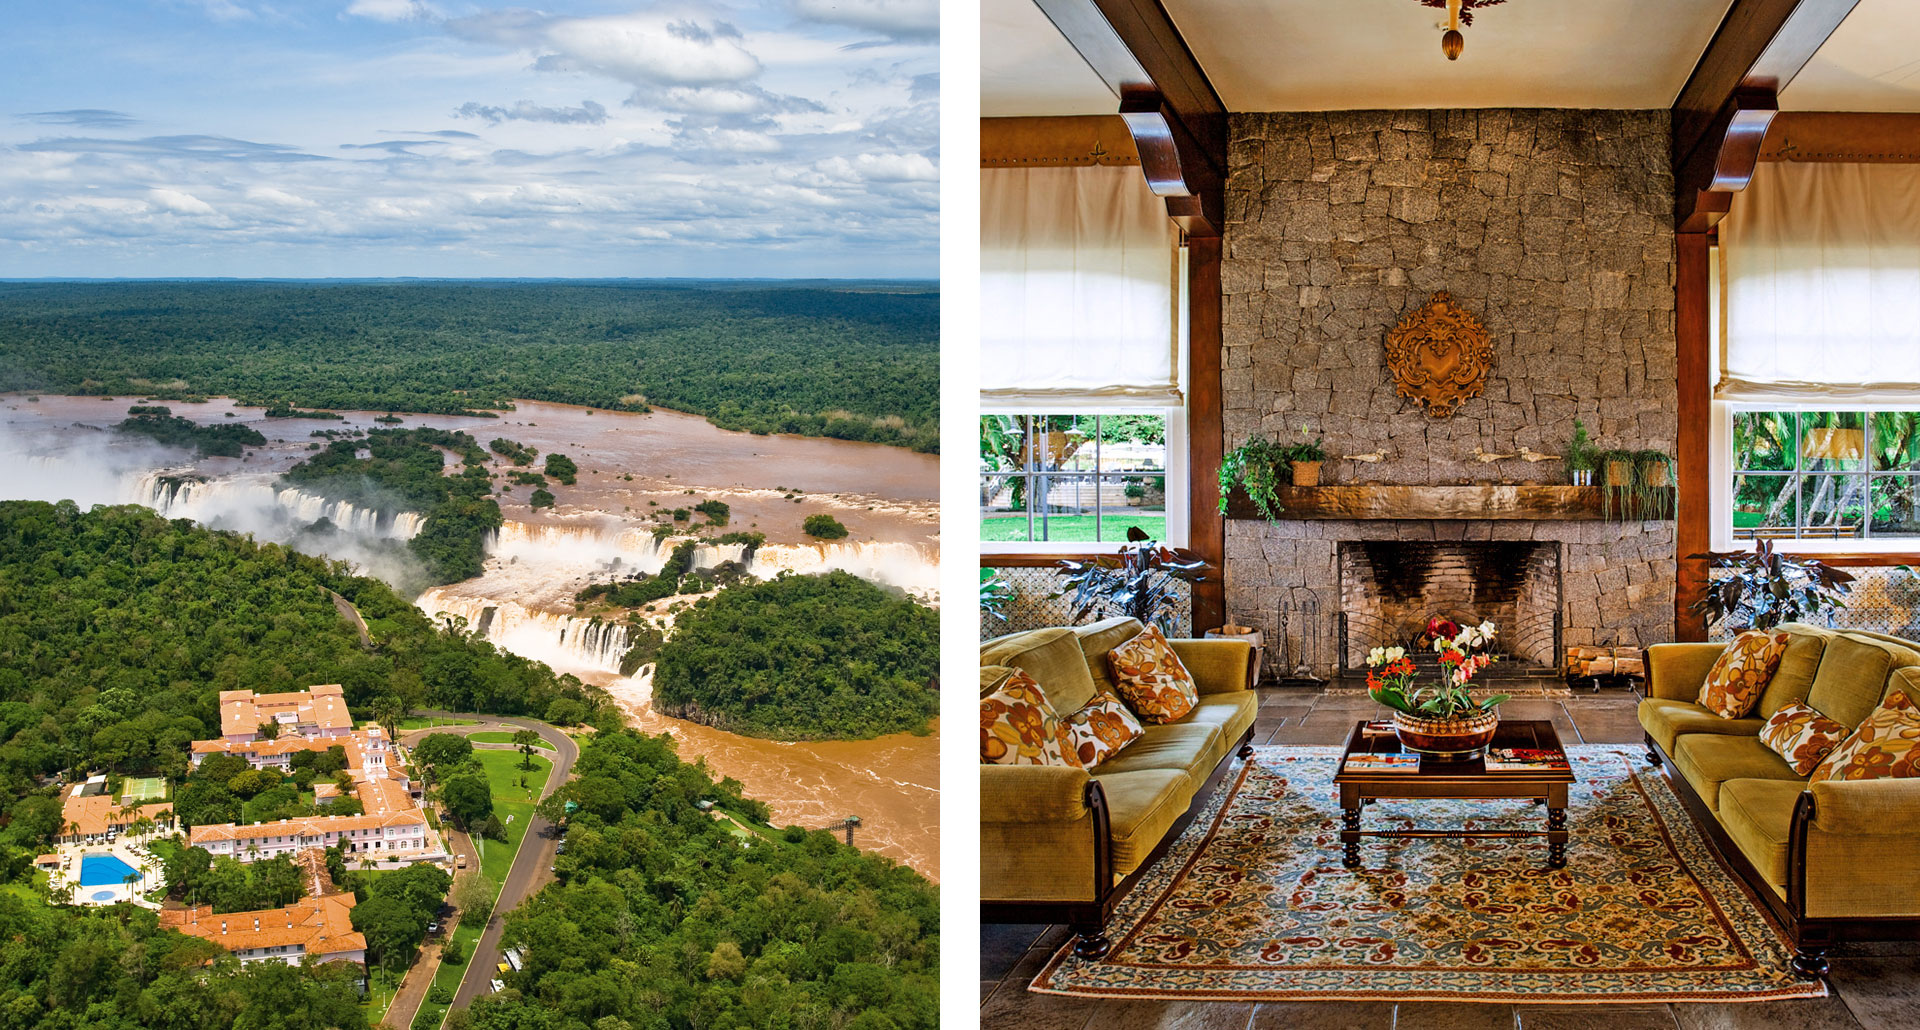 Belmond Hotel Das Cataratas - boutique hotel in Iguazu National Park